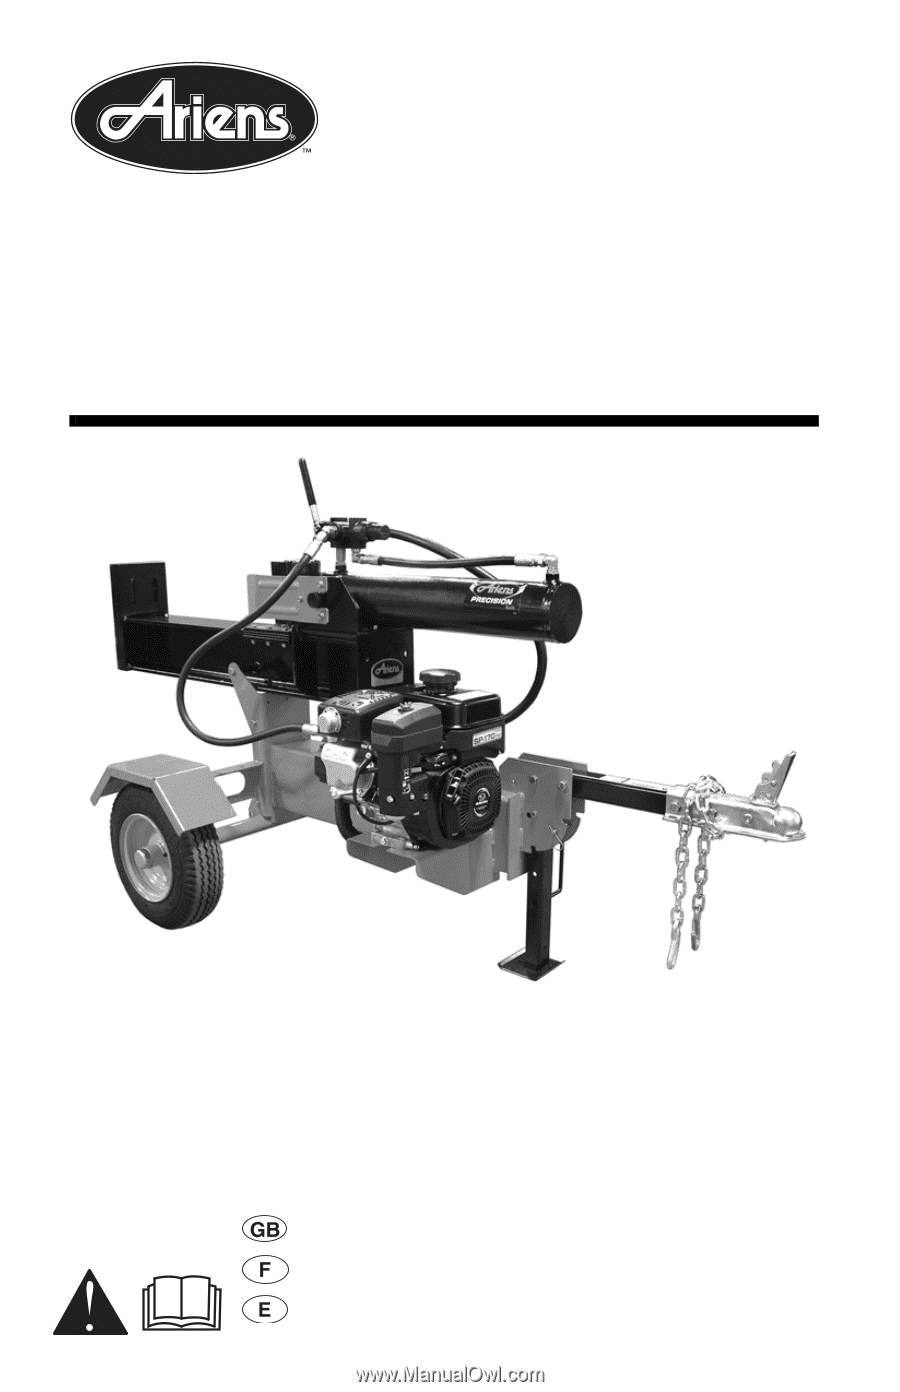 brave products log splitter parts manual